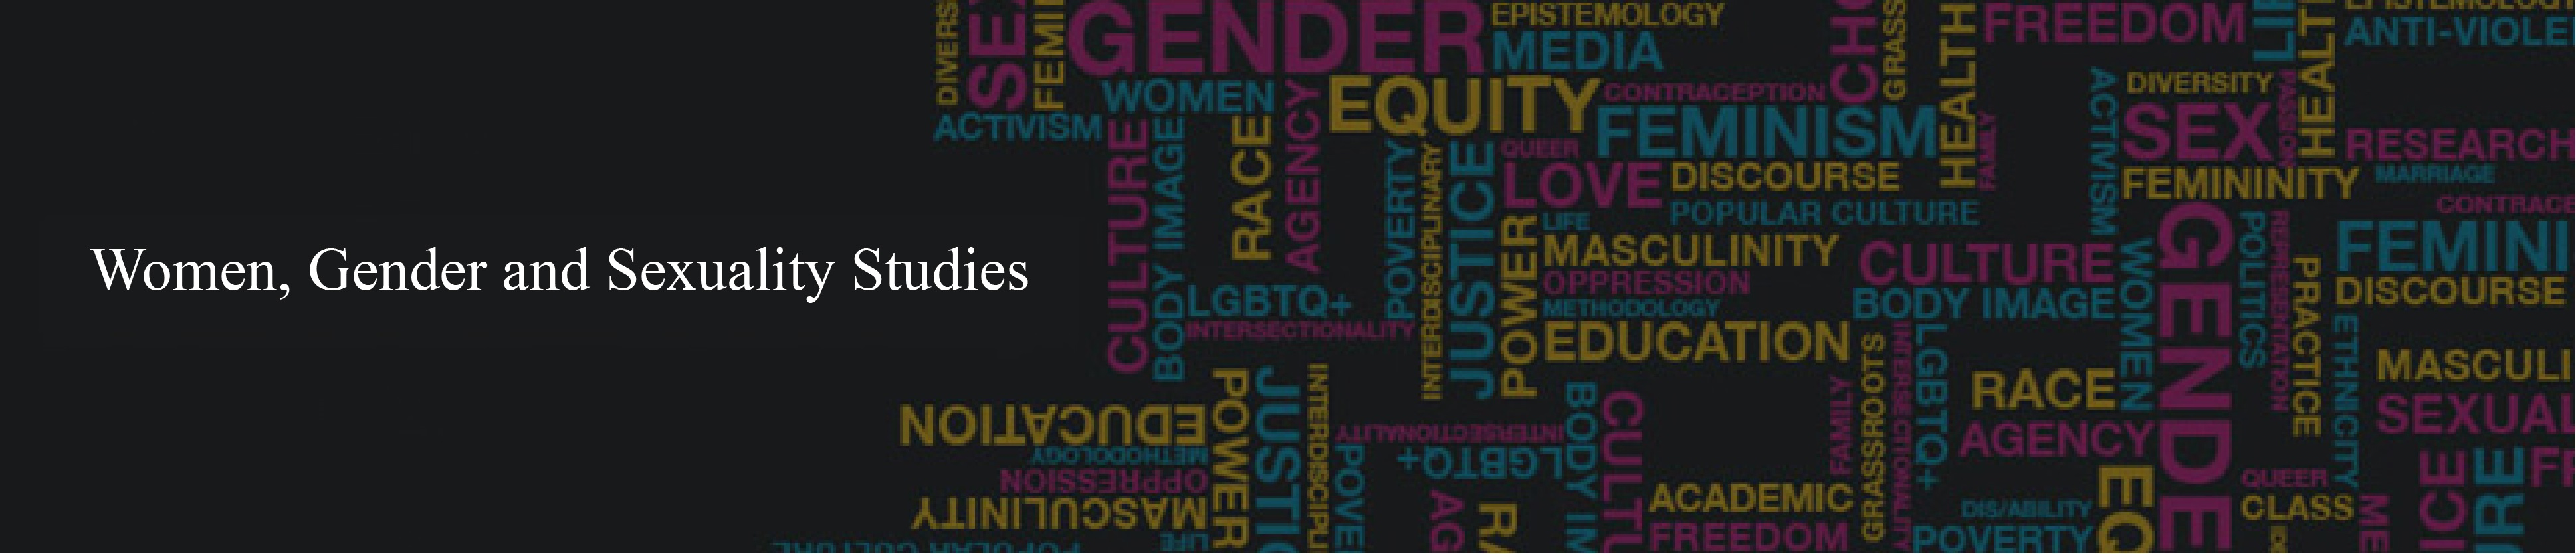 Women, Gender and Sexuality Studies